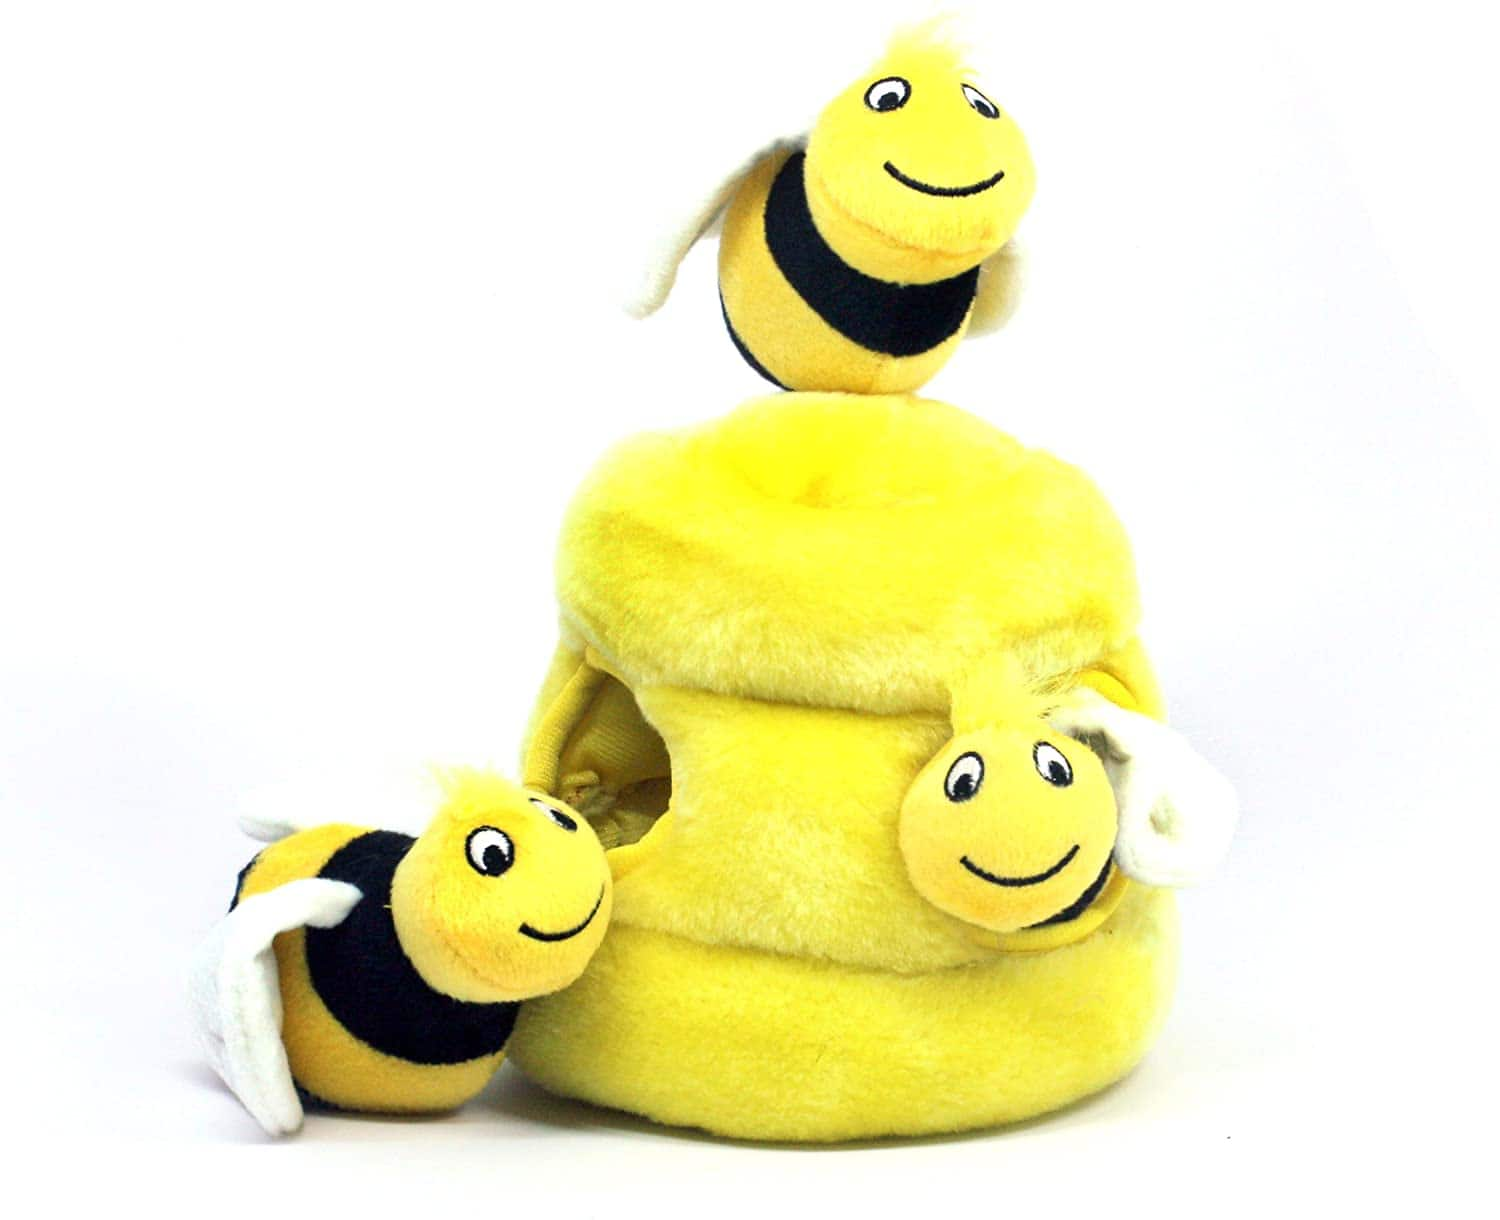 Outward Hound Hide-A-Bee Puzzle Plush Toy for Dogs $6.74 at Amazon or Chewy